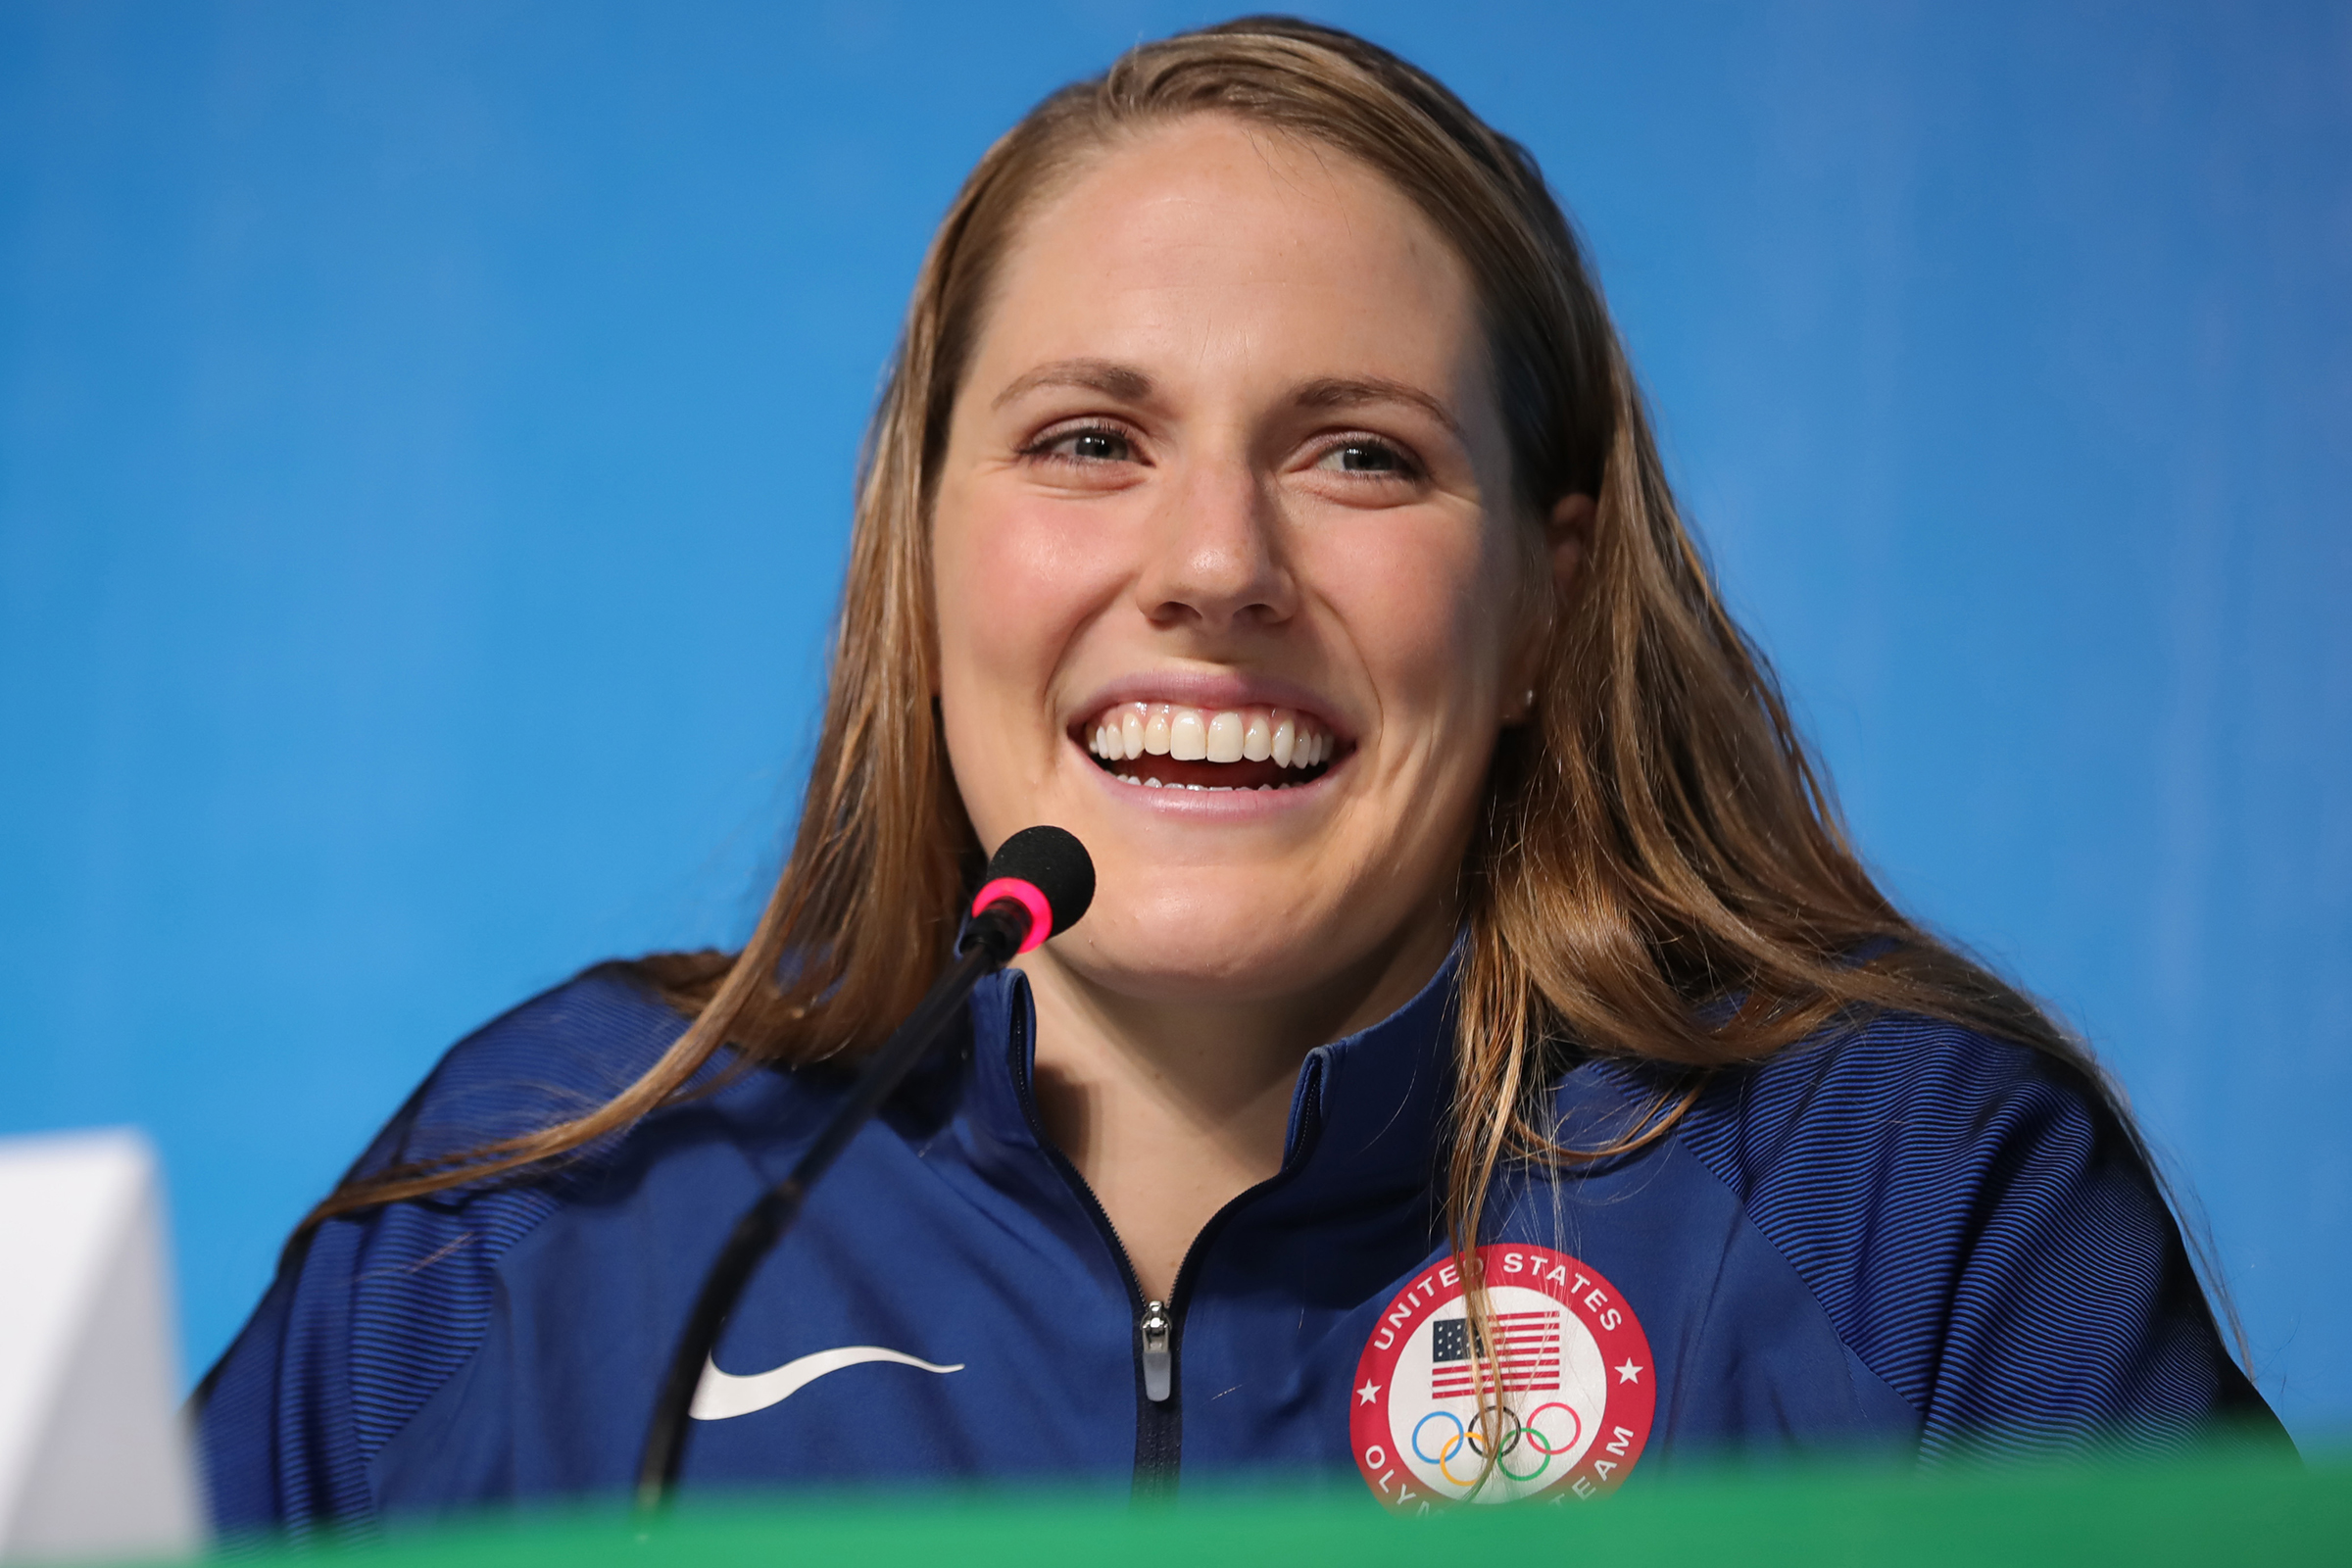 Missy Franklin (USA), is seen during the Swimming Press Conference of team USA at the MPC (Main Press Centre) at Olympic Park Barra prior to the Rio 2016 Olympic Games in Rio de Janeiro, Brazil, 3 August 2016. Rio 2016 Olympic Games take place from 05 to 21 August. Photo: Michael Kappeler/dpa